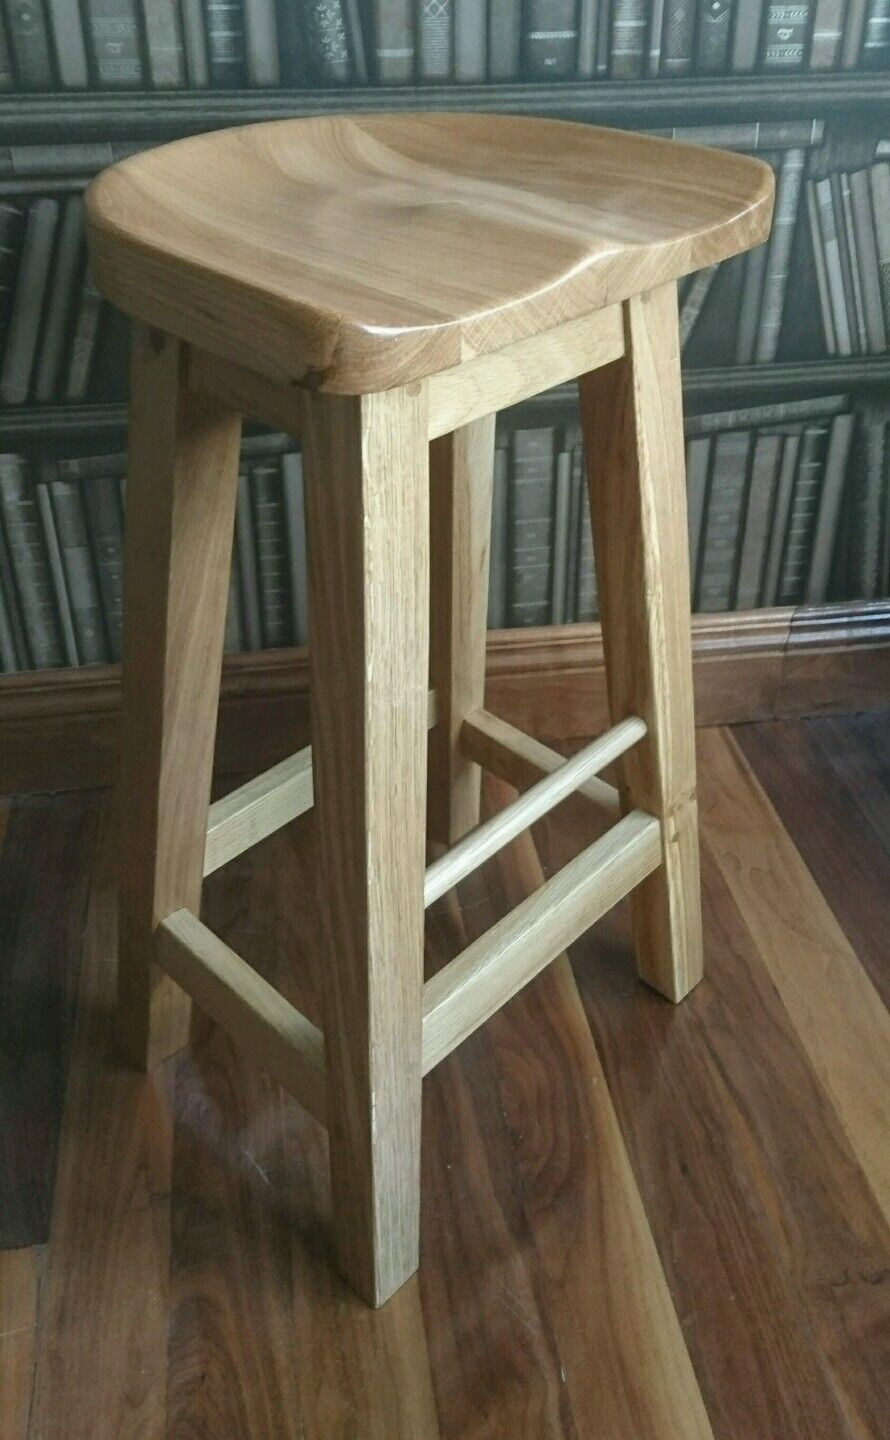 Details About Reguiny Oak Kitchen Breakfast Bar Stools Solid Wood Stool Dinning Seat